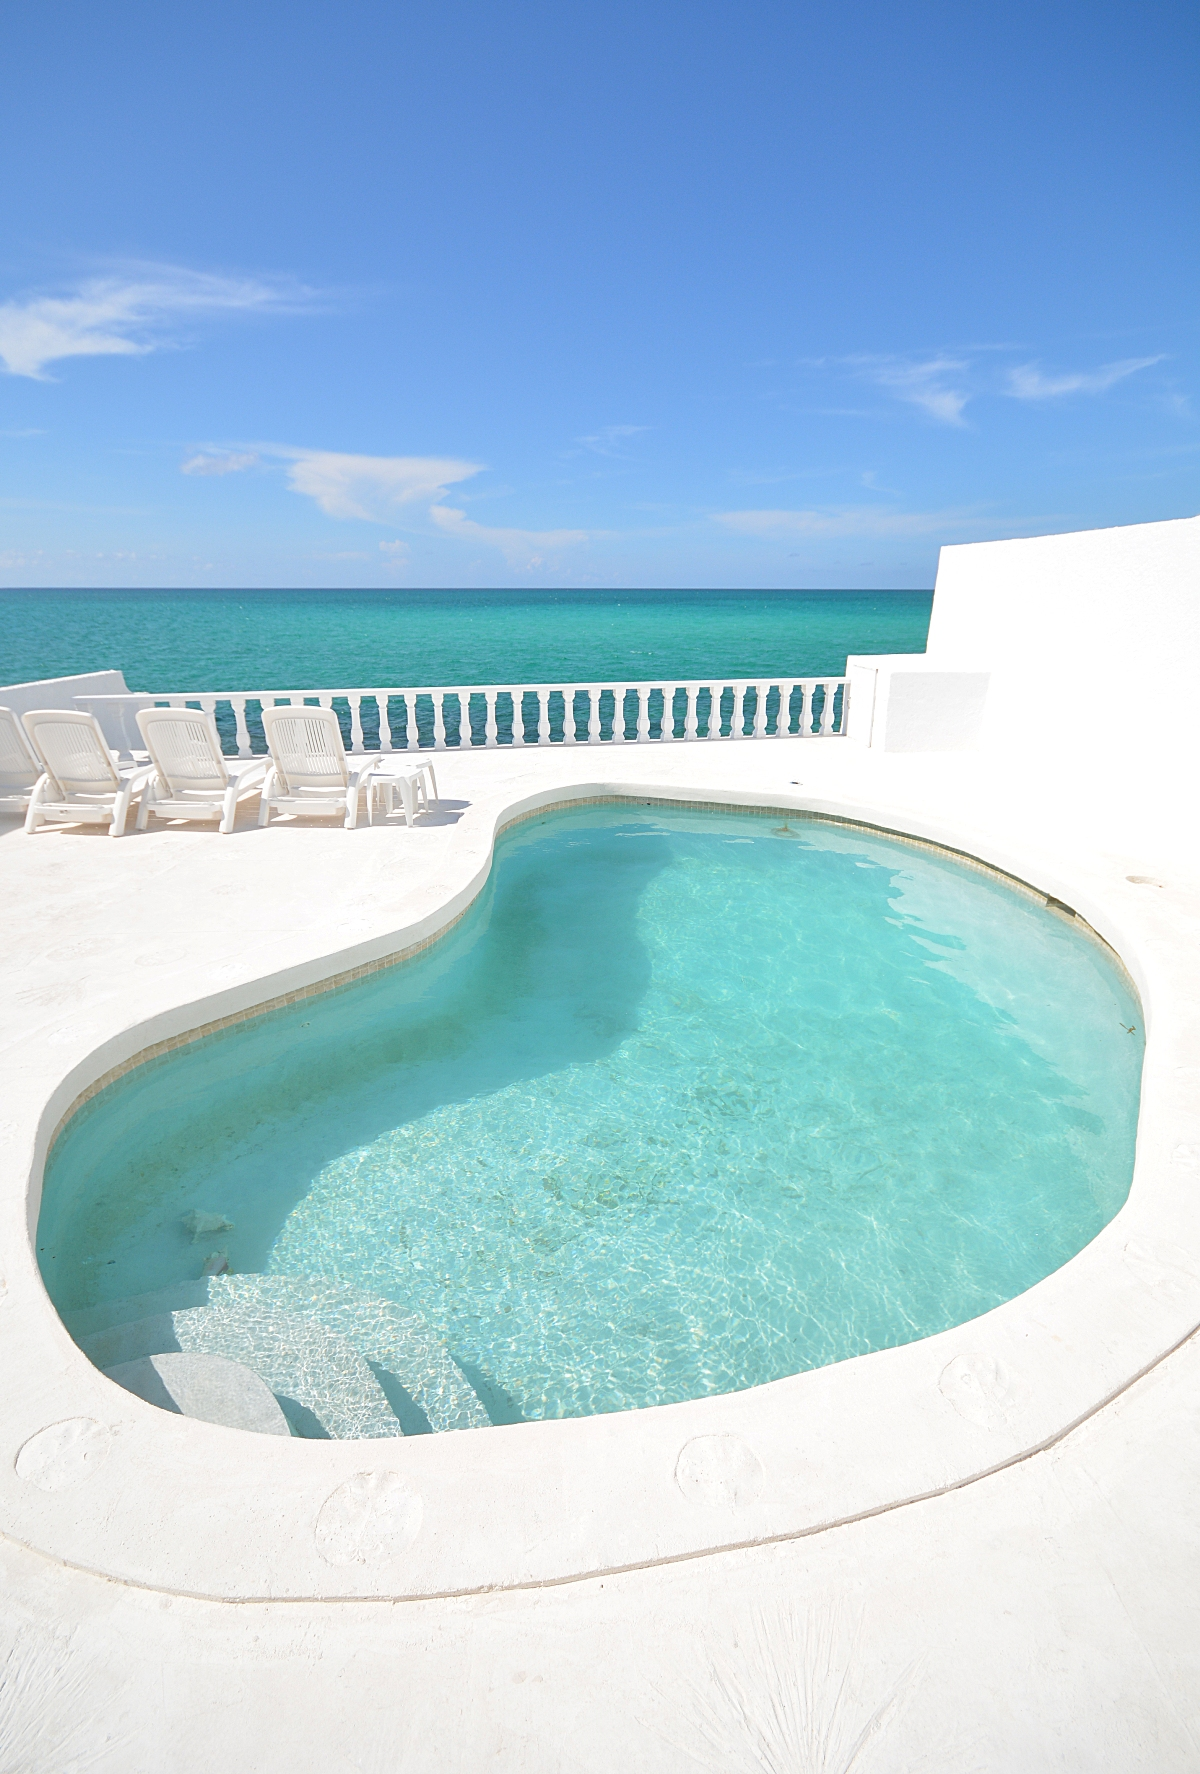 Single Family Home for Rent at Caprice, Waterfront Home in Cable Beach with pool Caprice, Cable Beach, Nassau And Paradise Island Bahamas